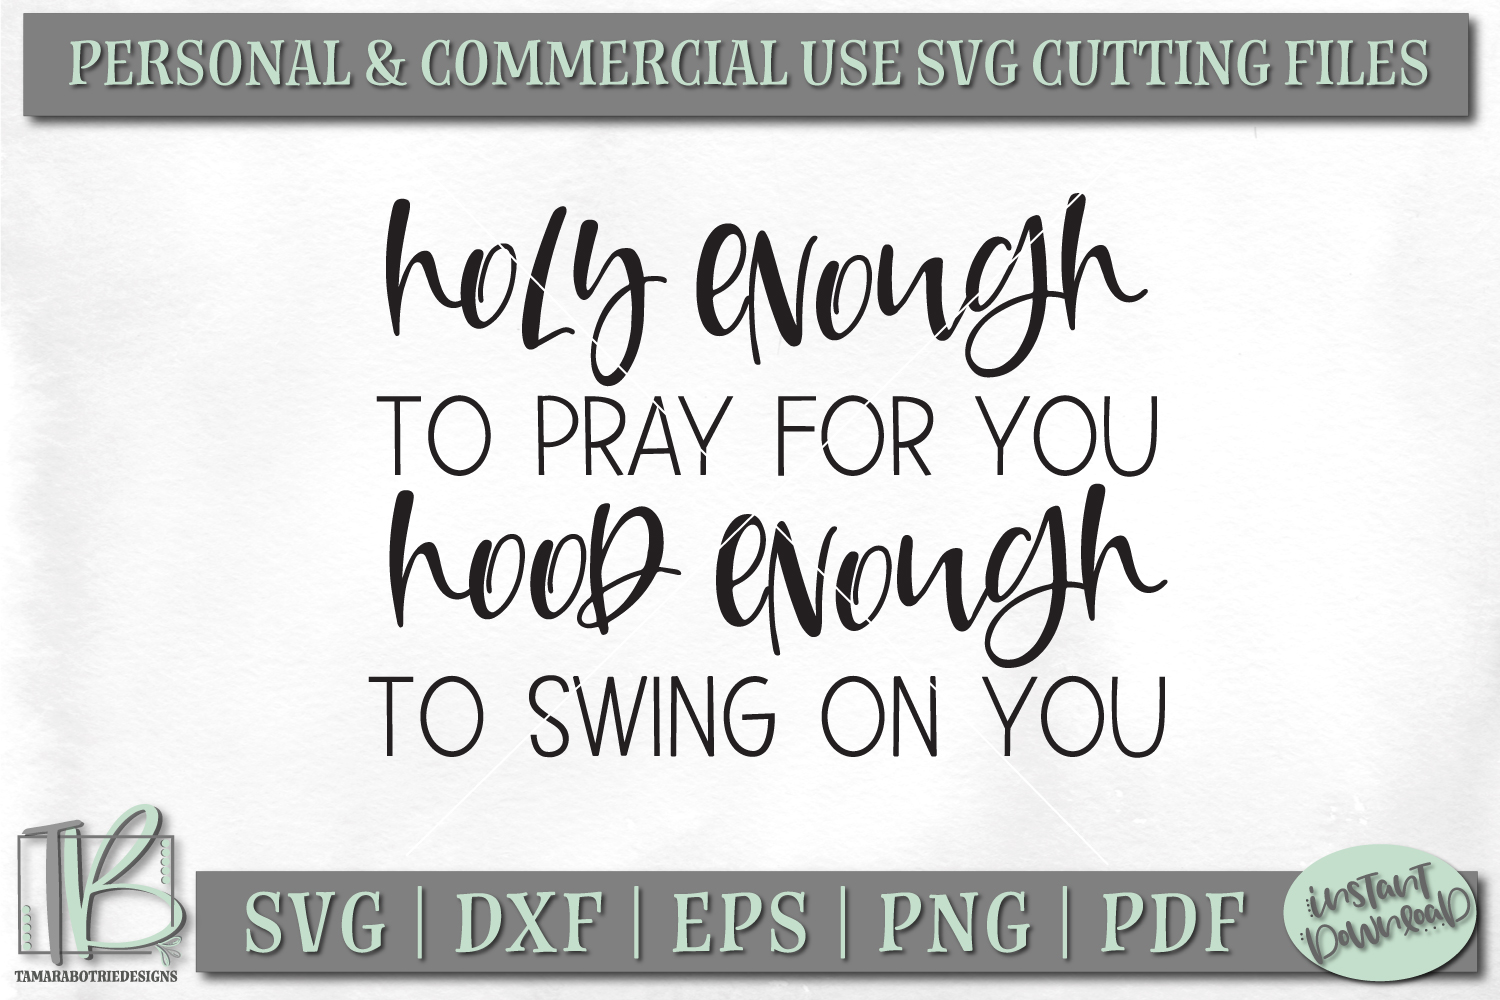 Holy Enough To Pray For You Hood Enough To Swing On You SVG example image 2